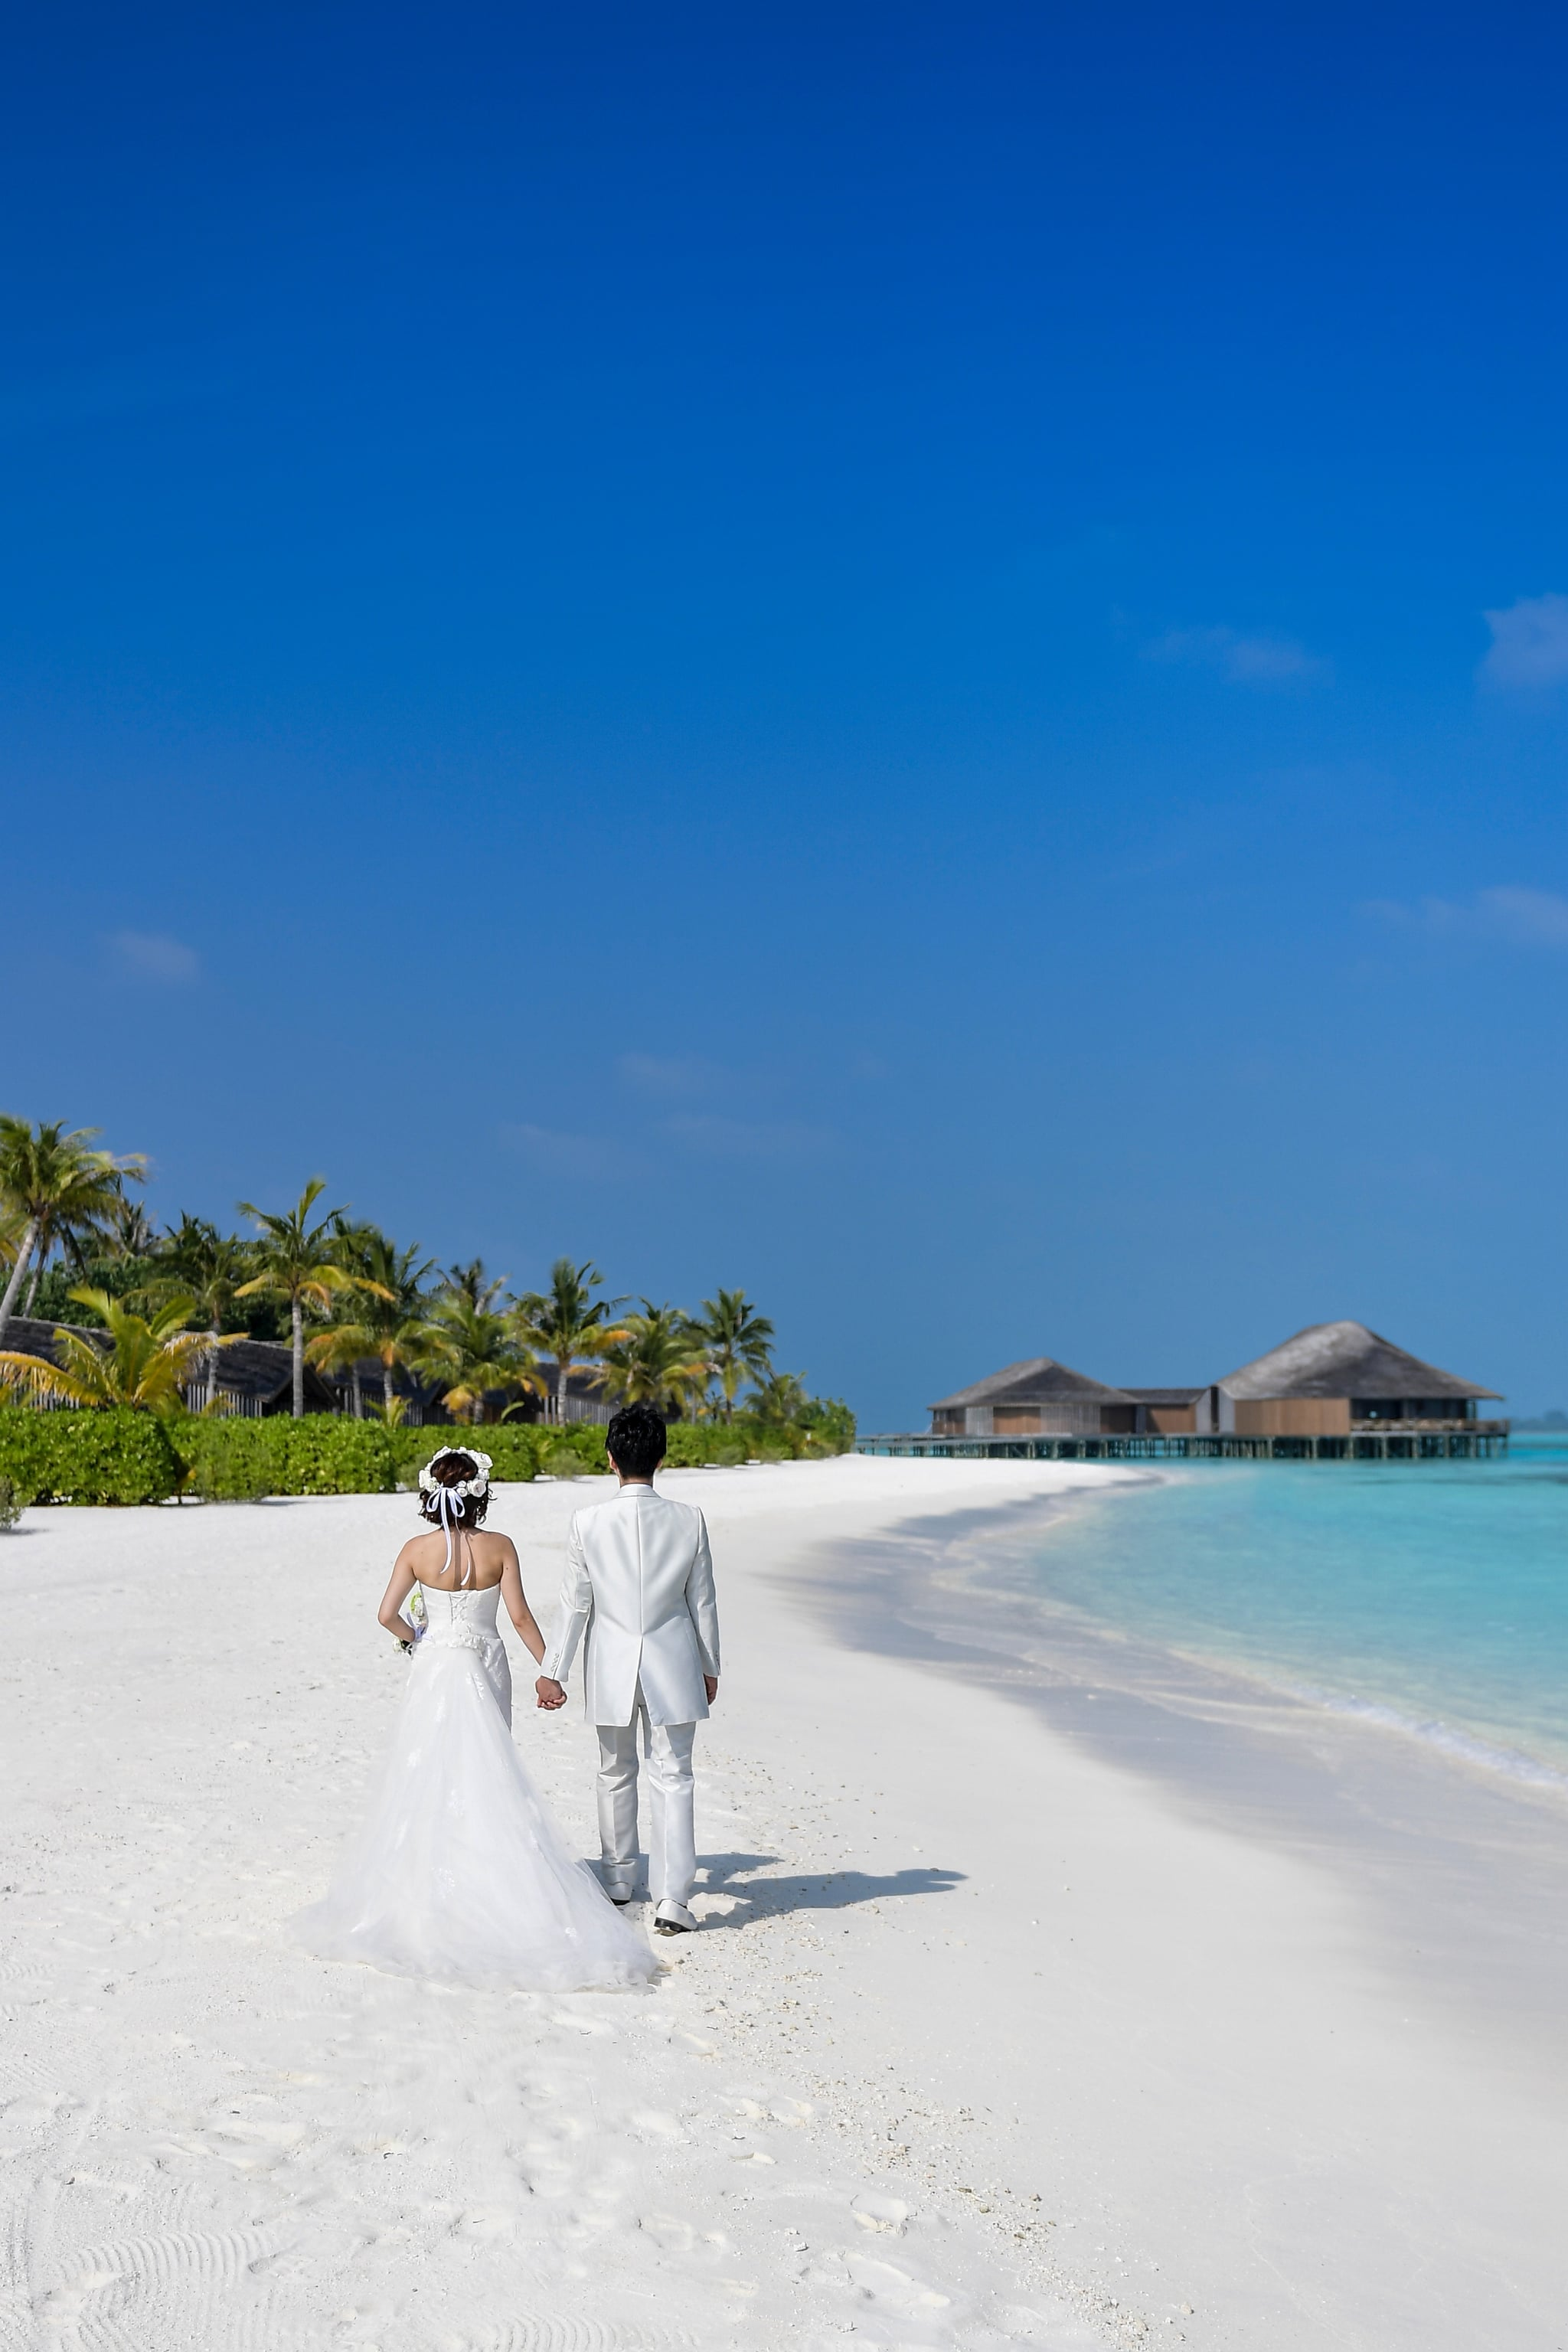 How To Legalize A Destination Wedding In The Us Popsugar Love Sex